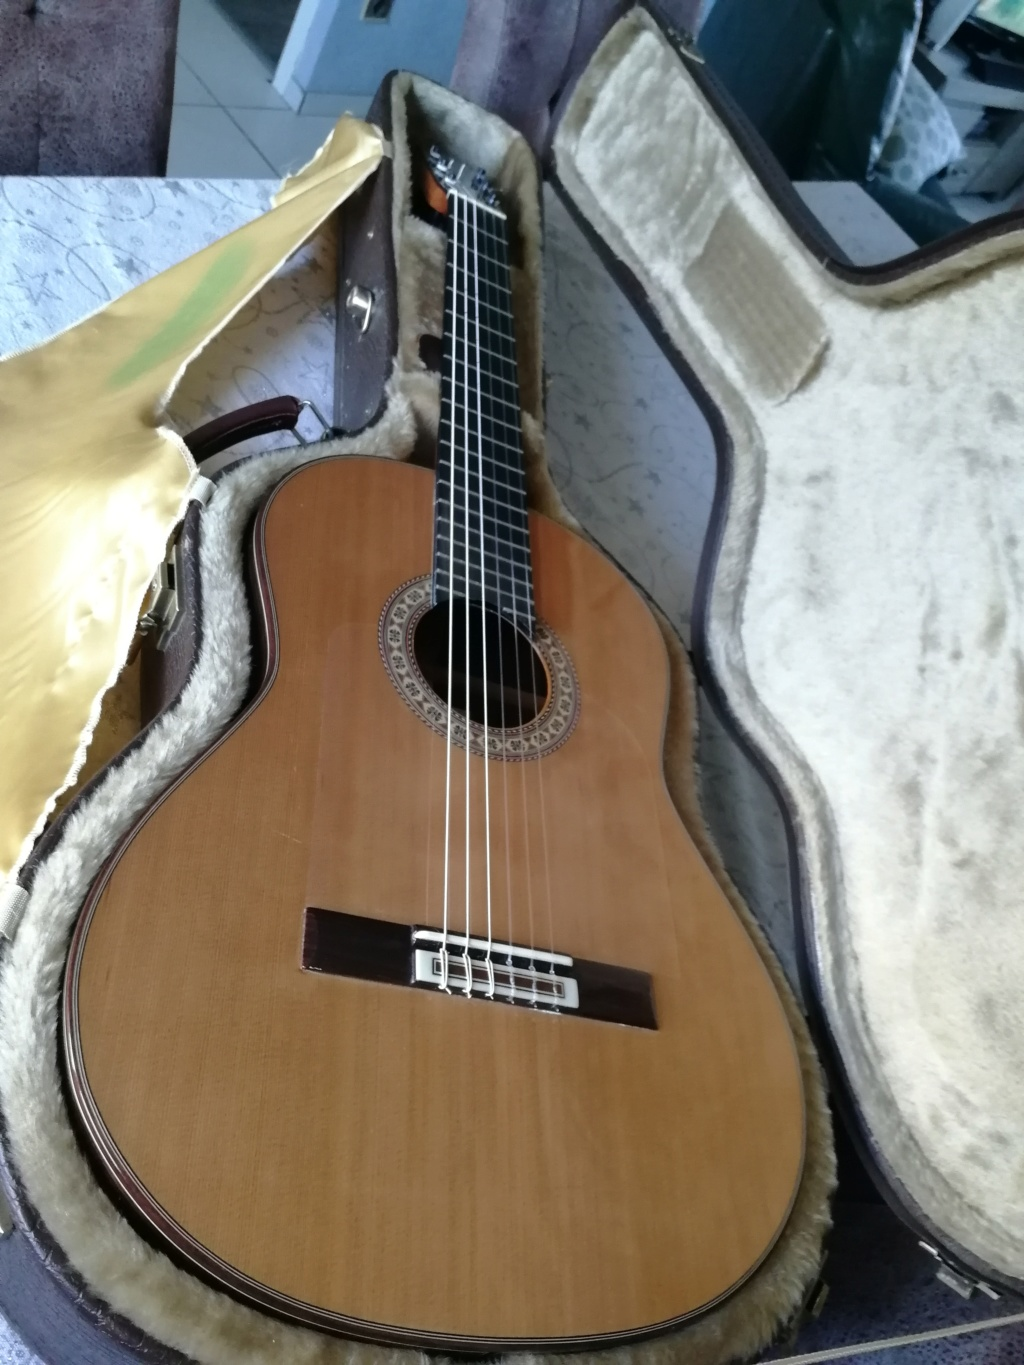 Nouvelle guitare  Img_2013